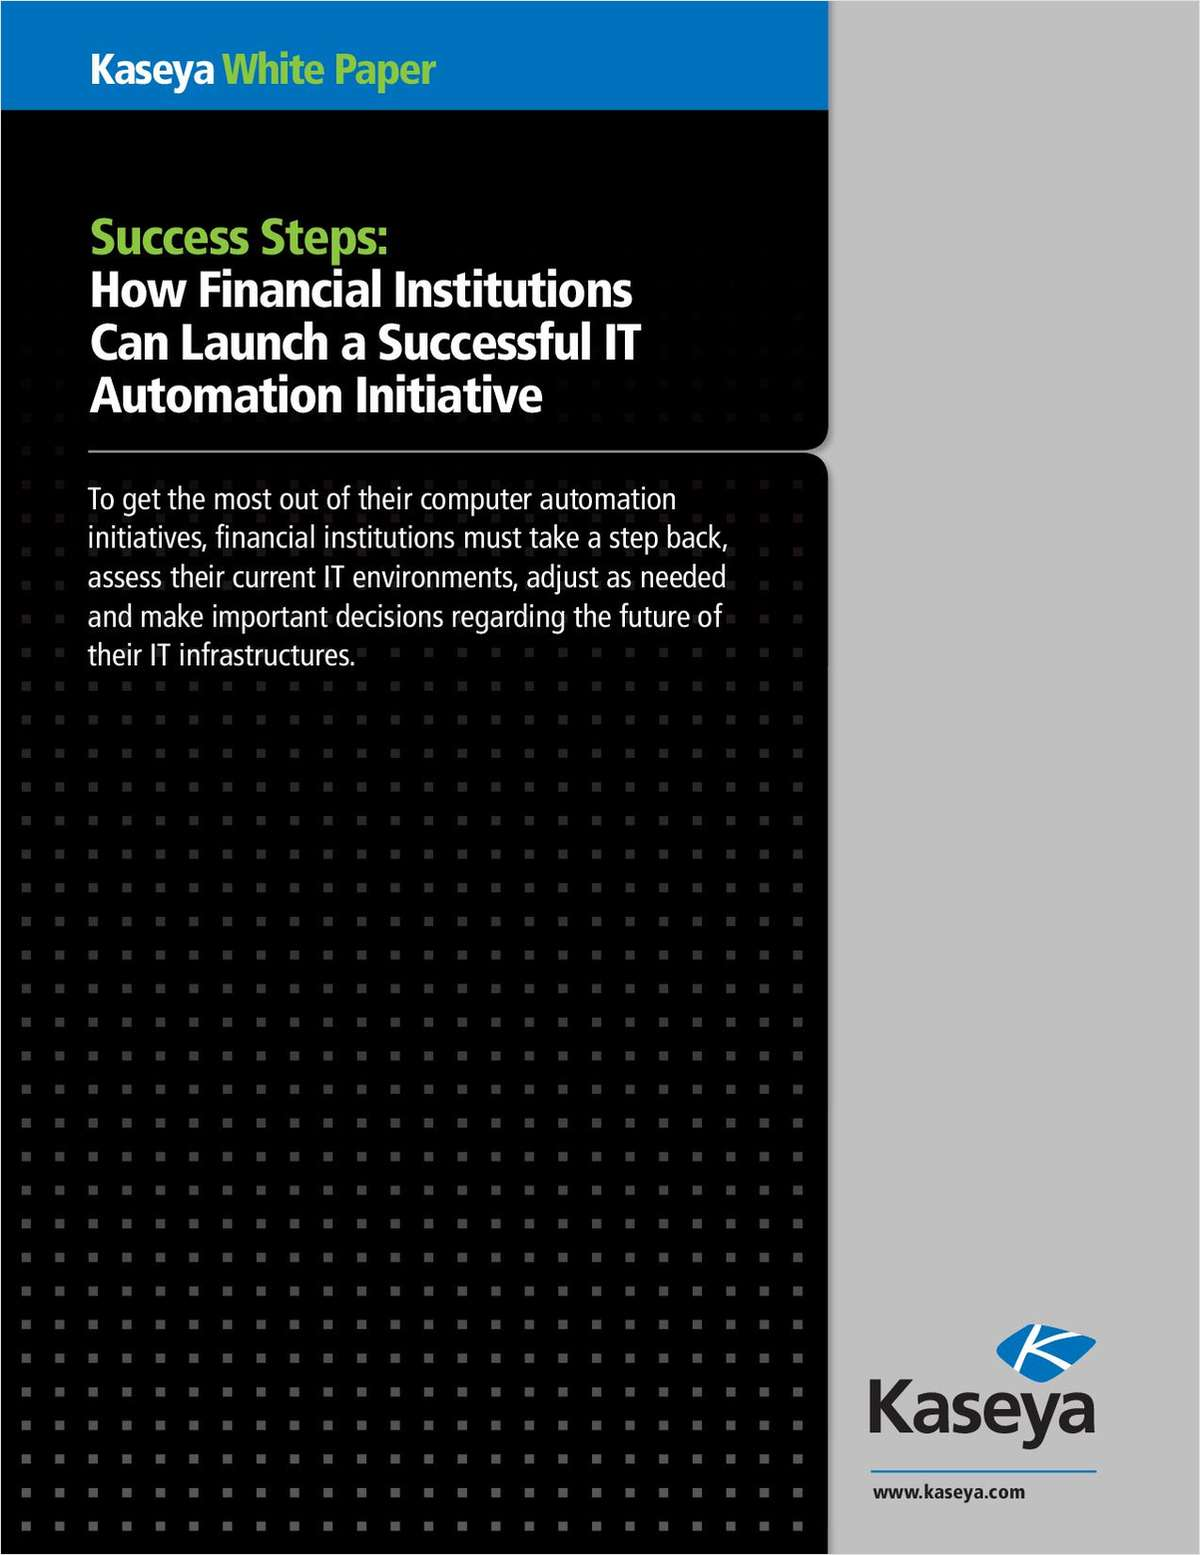 How Financial Institutions Can Launch a Successful IT Automation Initiative